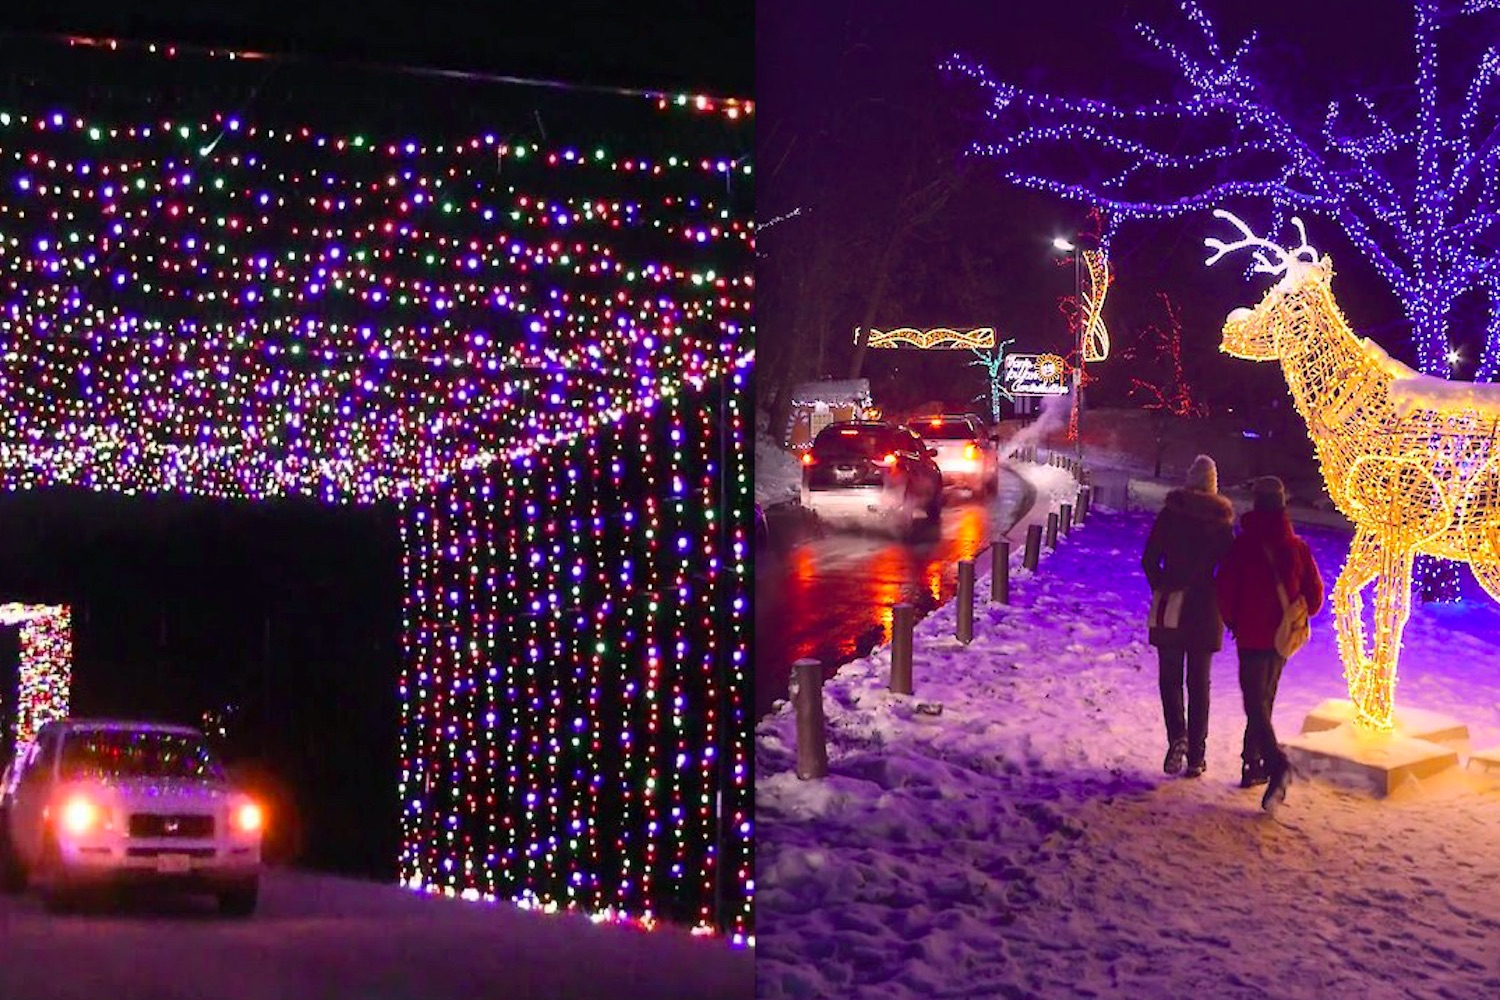 Christmas Events Toronto 2021 Here Are All The Holiday Drive Thru Light Displays Arriving Soon Around The Gta Curiocity Group Inc